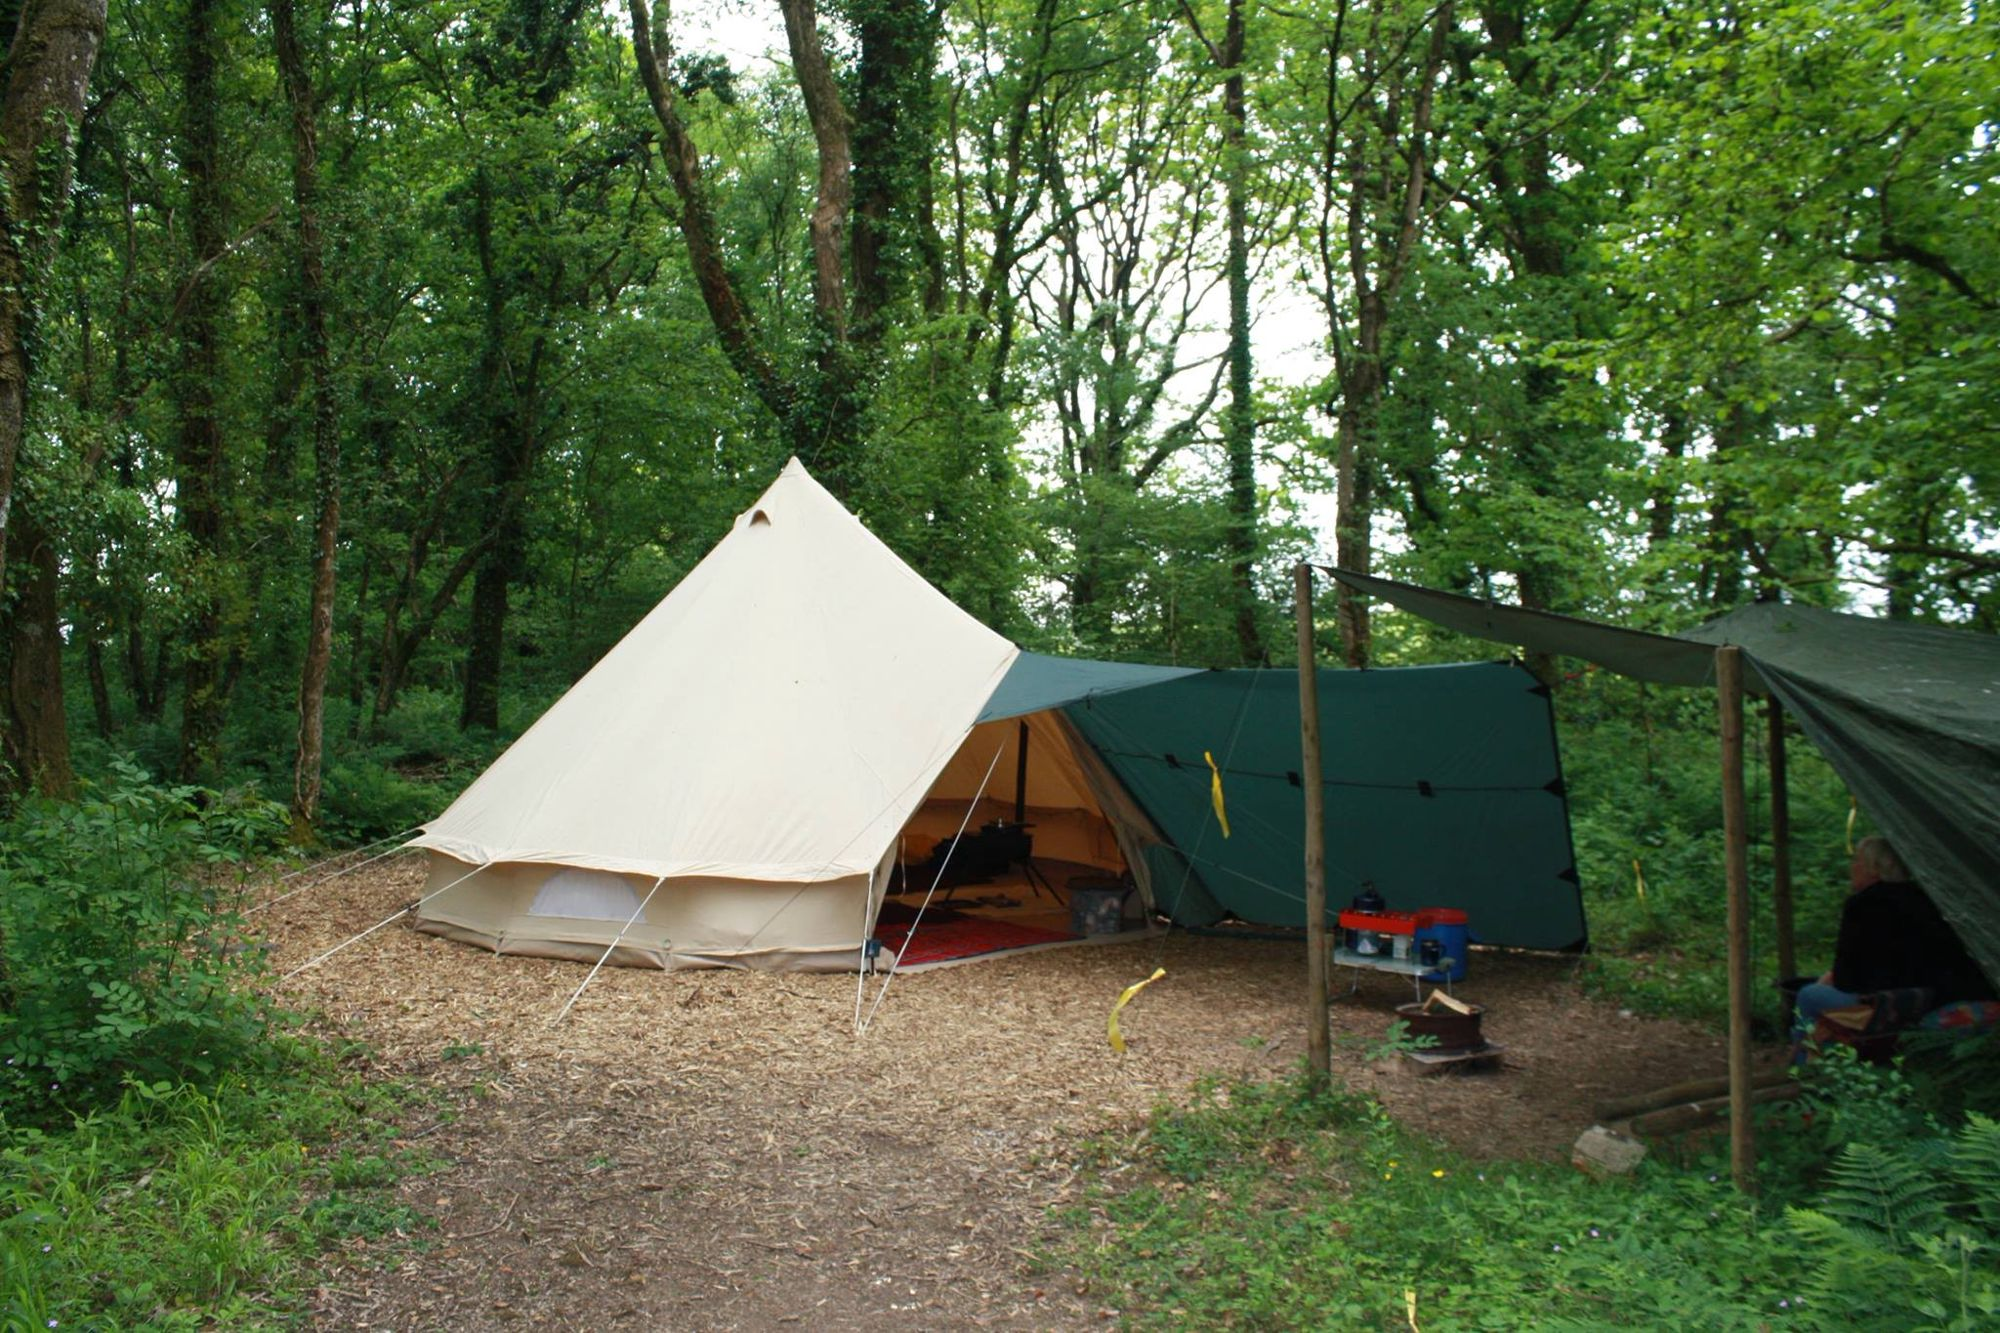 Opening its gates to campers as recently as 2009, Hole Station has already become a firm favourite among the camping fraternity, which is hardly surprising given its secluded woodland pitches, campfire encouragement, and natural beauty.